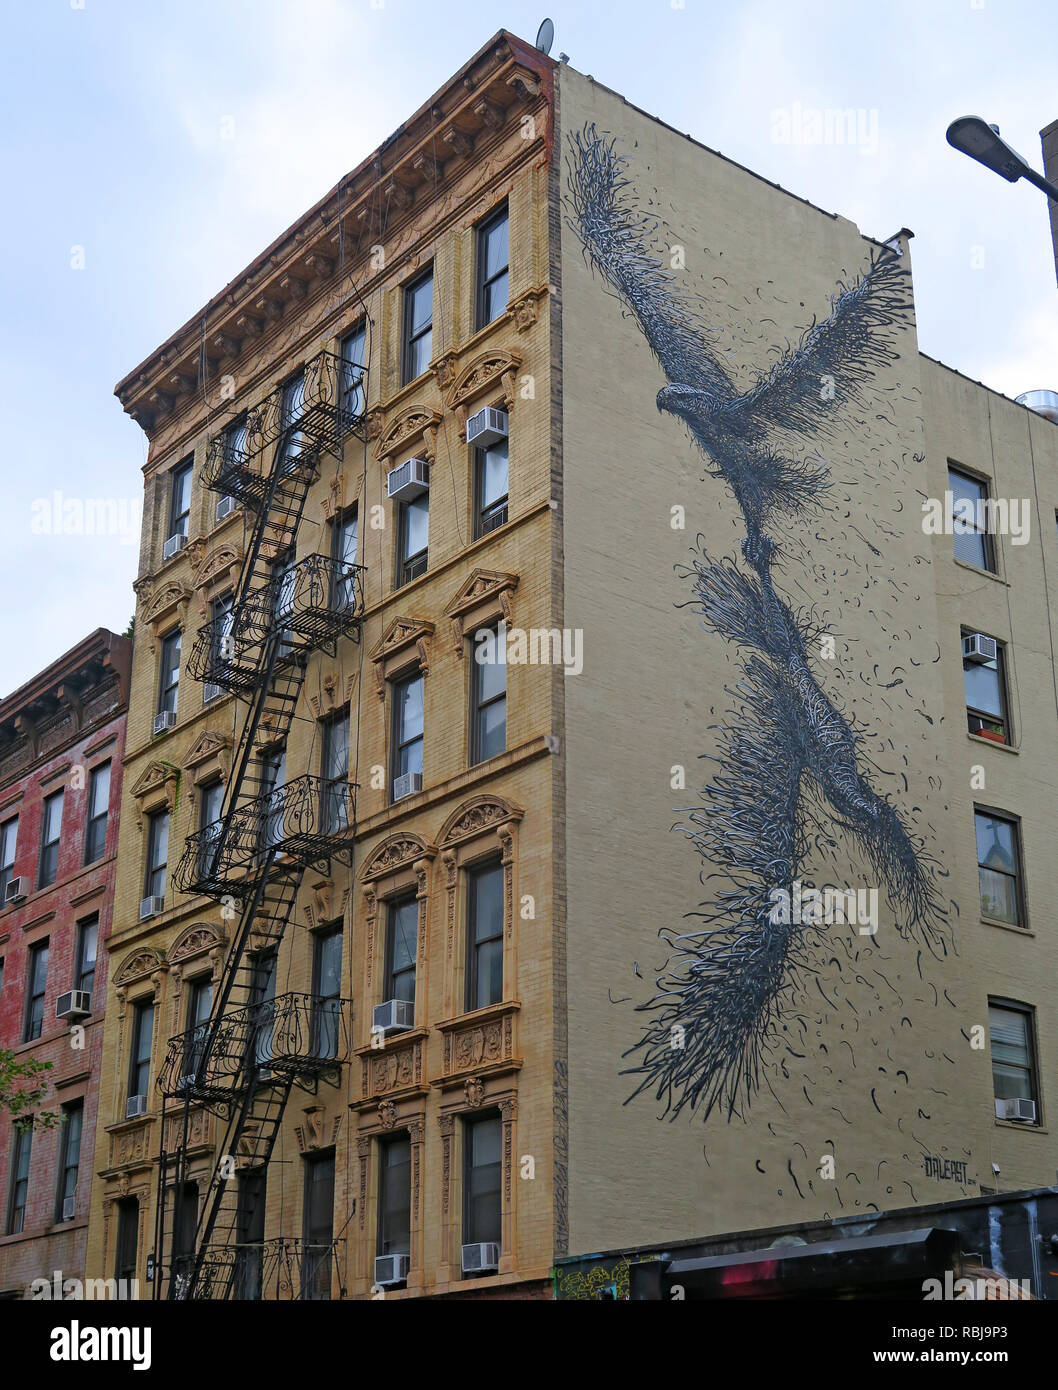 Art - Proletariat, 102, Saint Mark's Place, East Village, Manhattan New York, NYC, USA - Stock Image